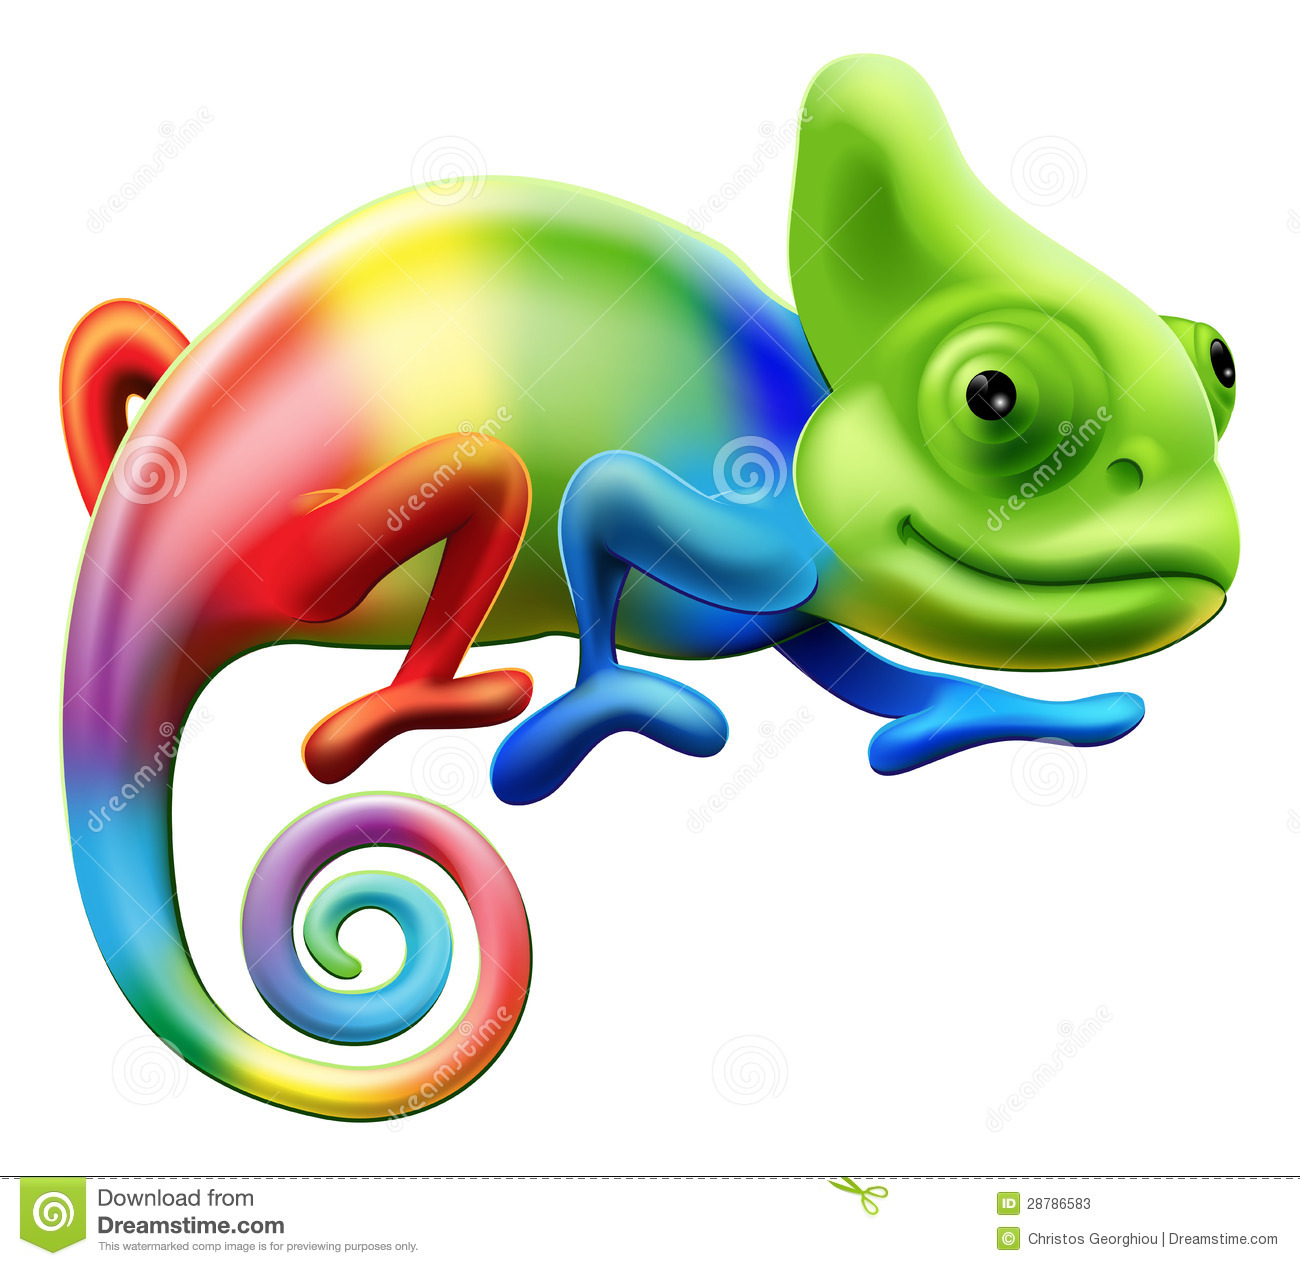 An illustration of a cartoon rainbow coloured chameleon.